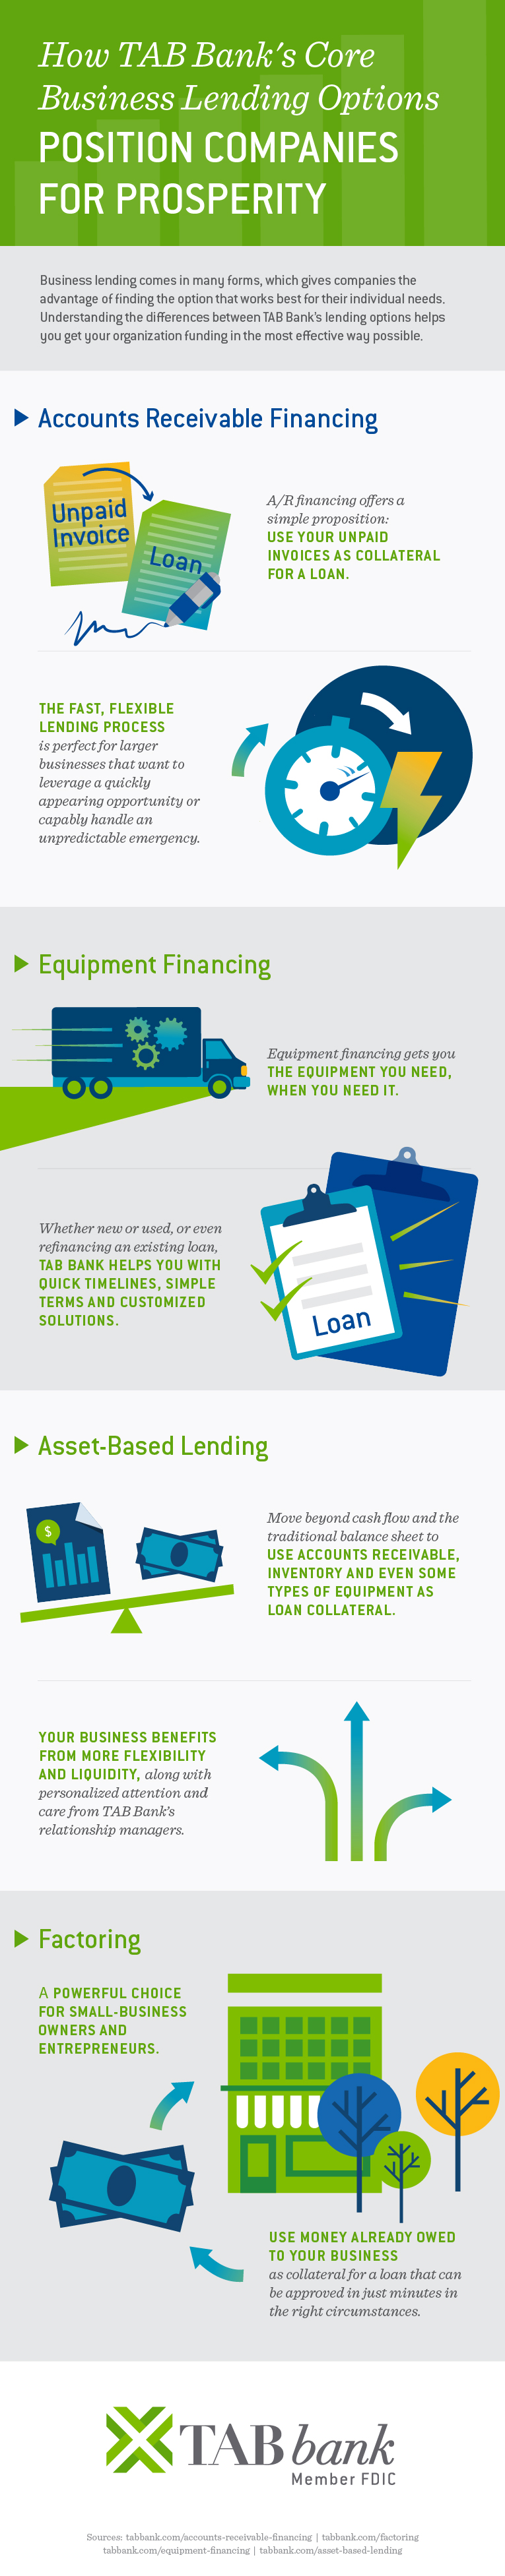 Infographic explaining with words and images how TAB Bank's core business lending options position companies for posterity.